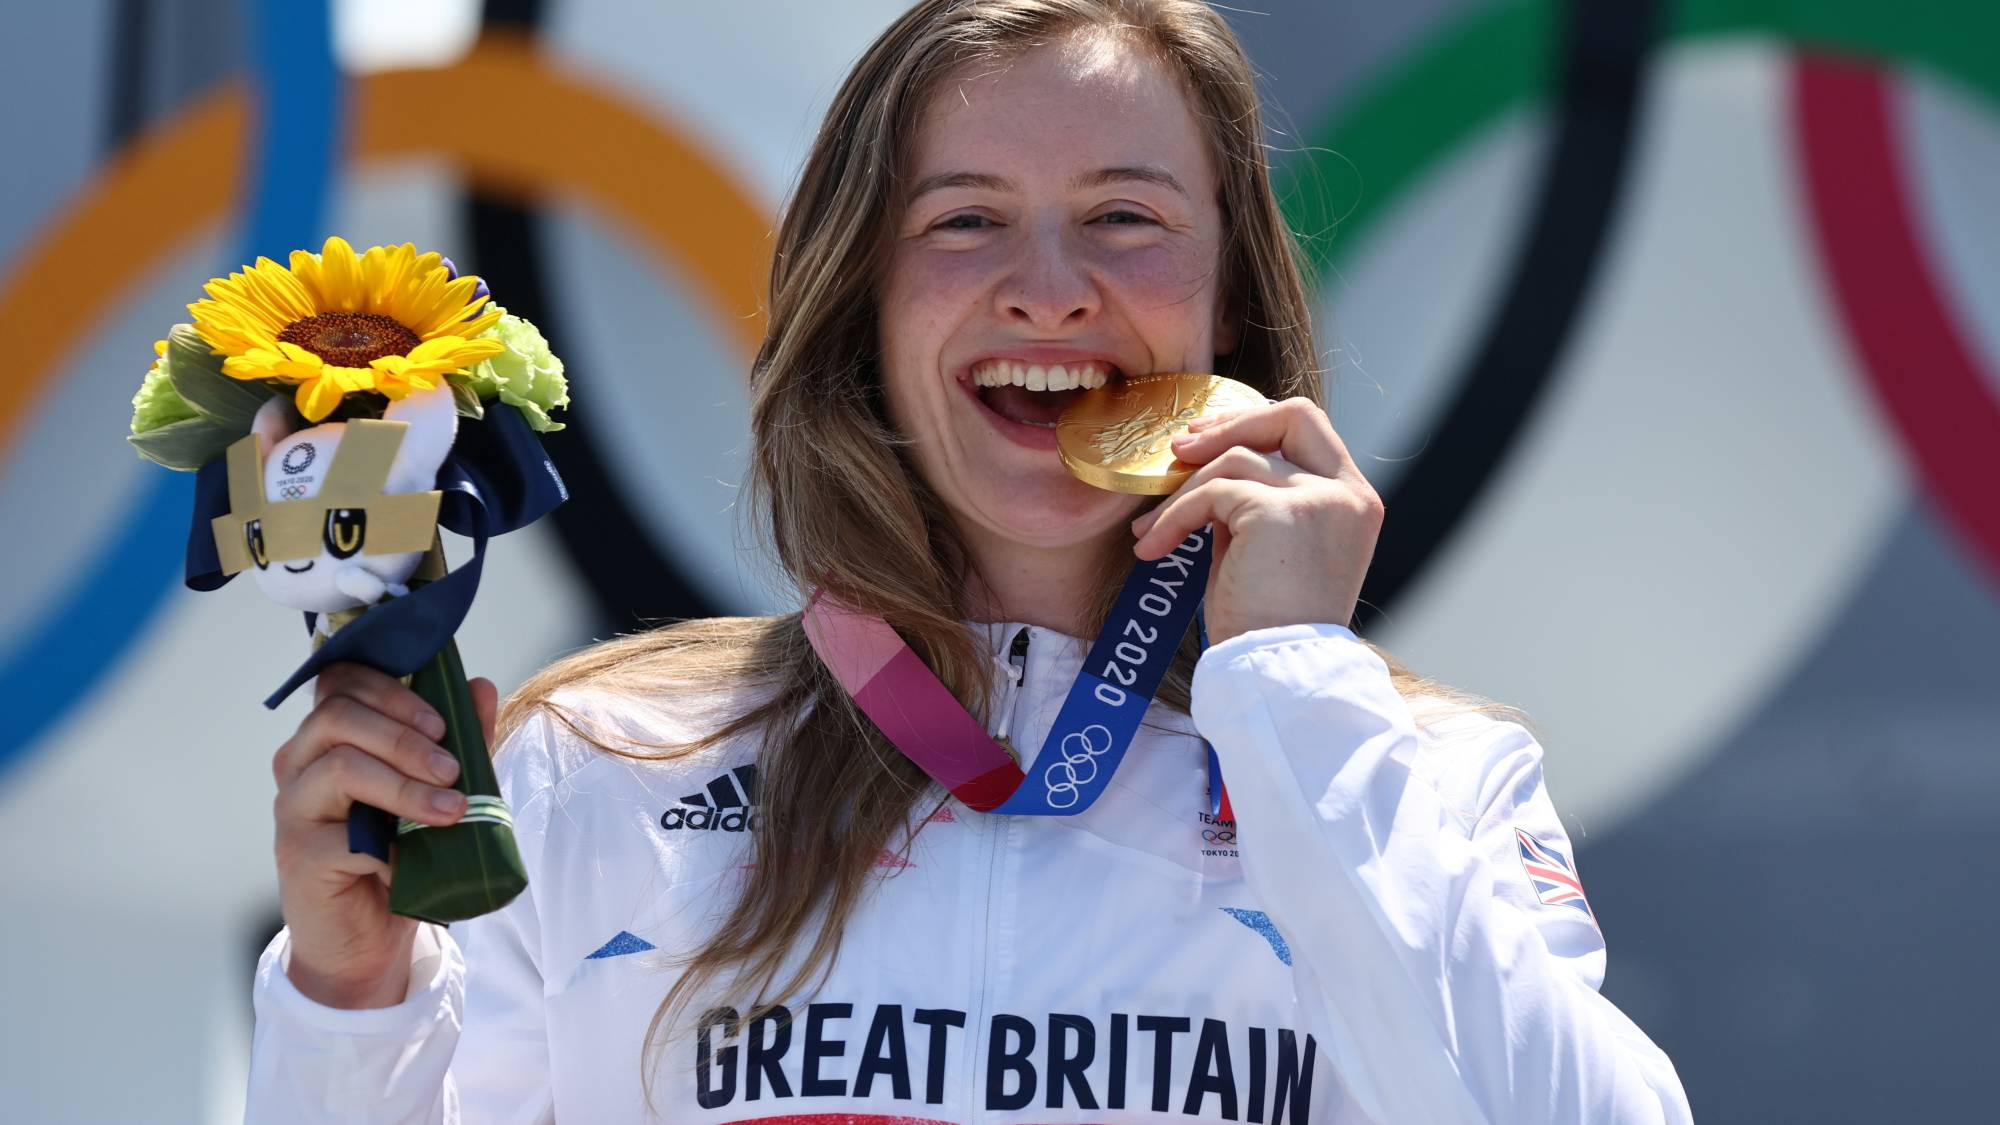 Gold medalist Charlotte Worthington of Britain takes a bite of her gold medal from the women's BMX freestyle event.   REUTERS